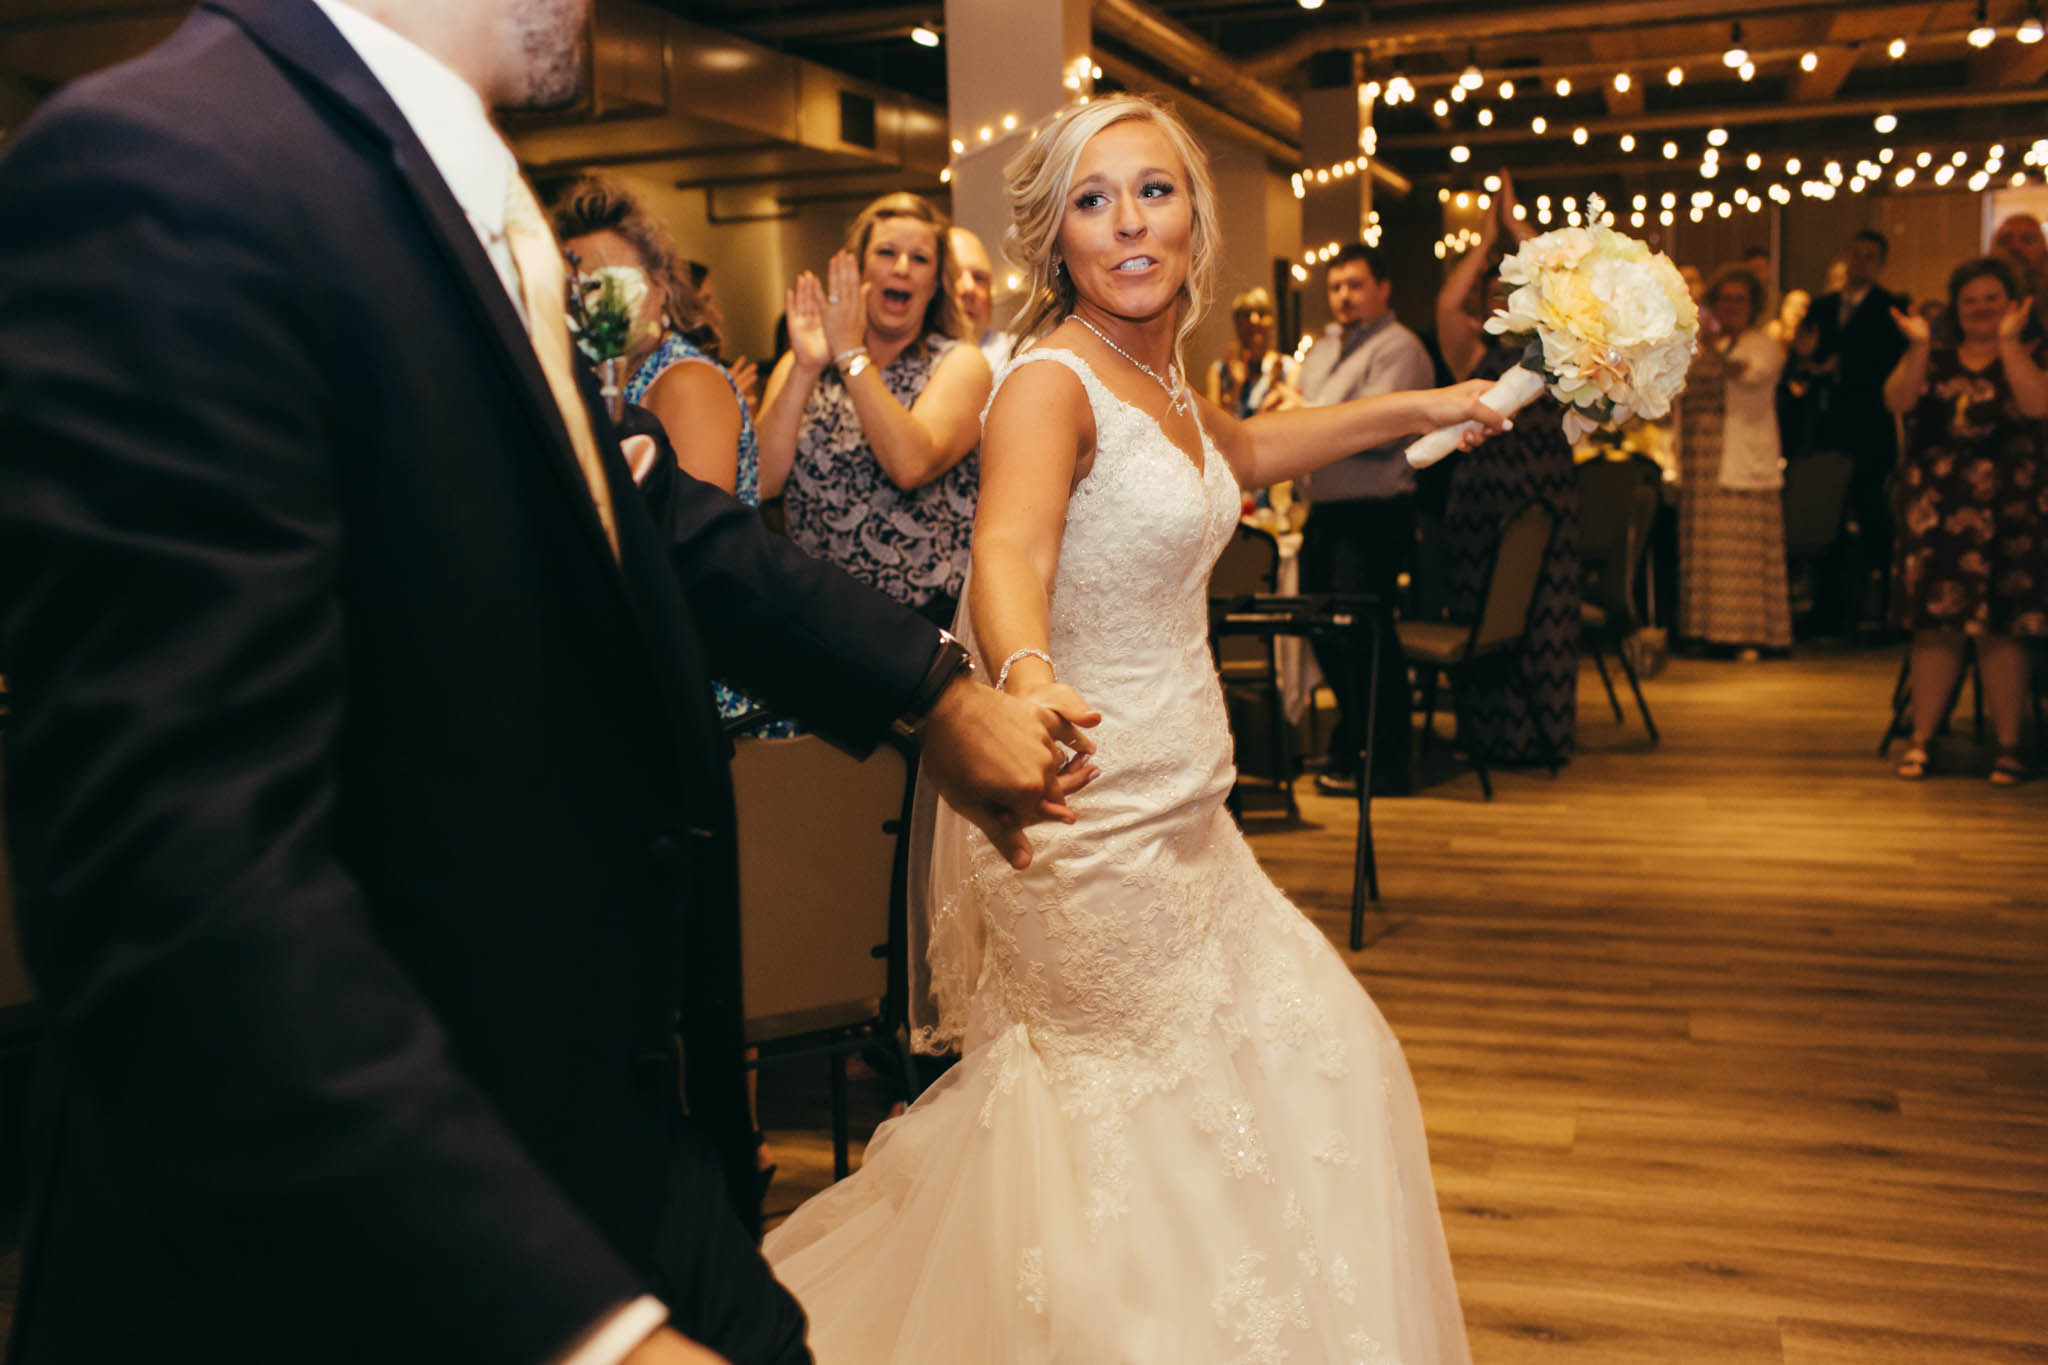 Jillian VanZytveld Photography - Grand Rapids Lifestyle Wedding Photography - 155.jpg